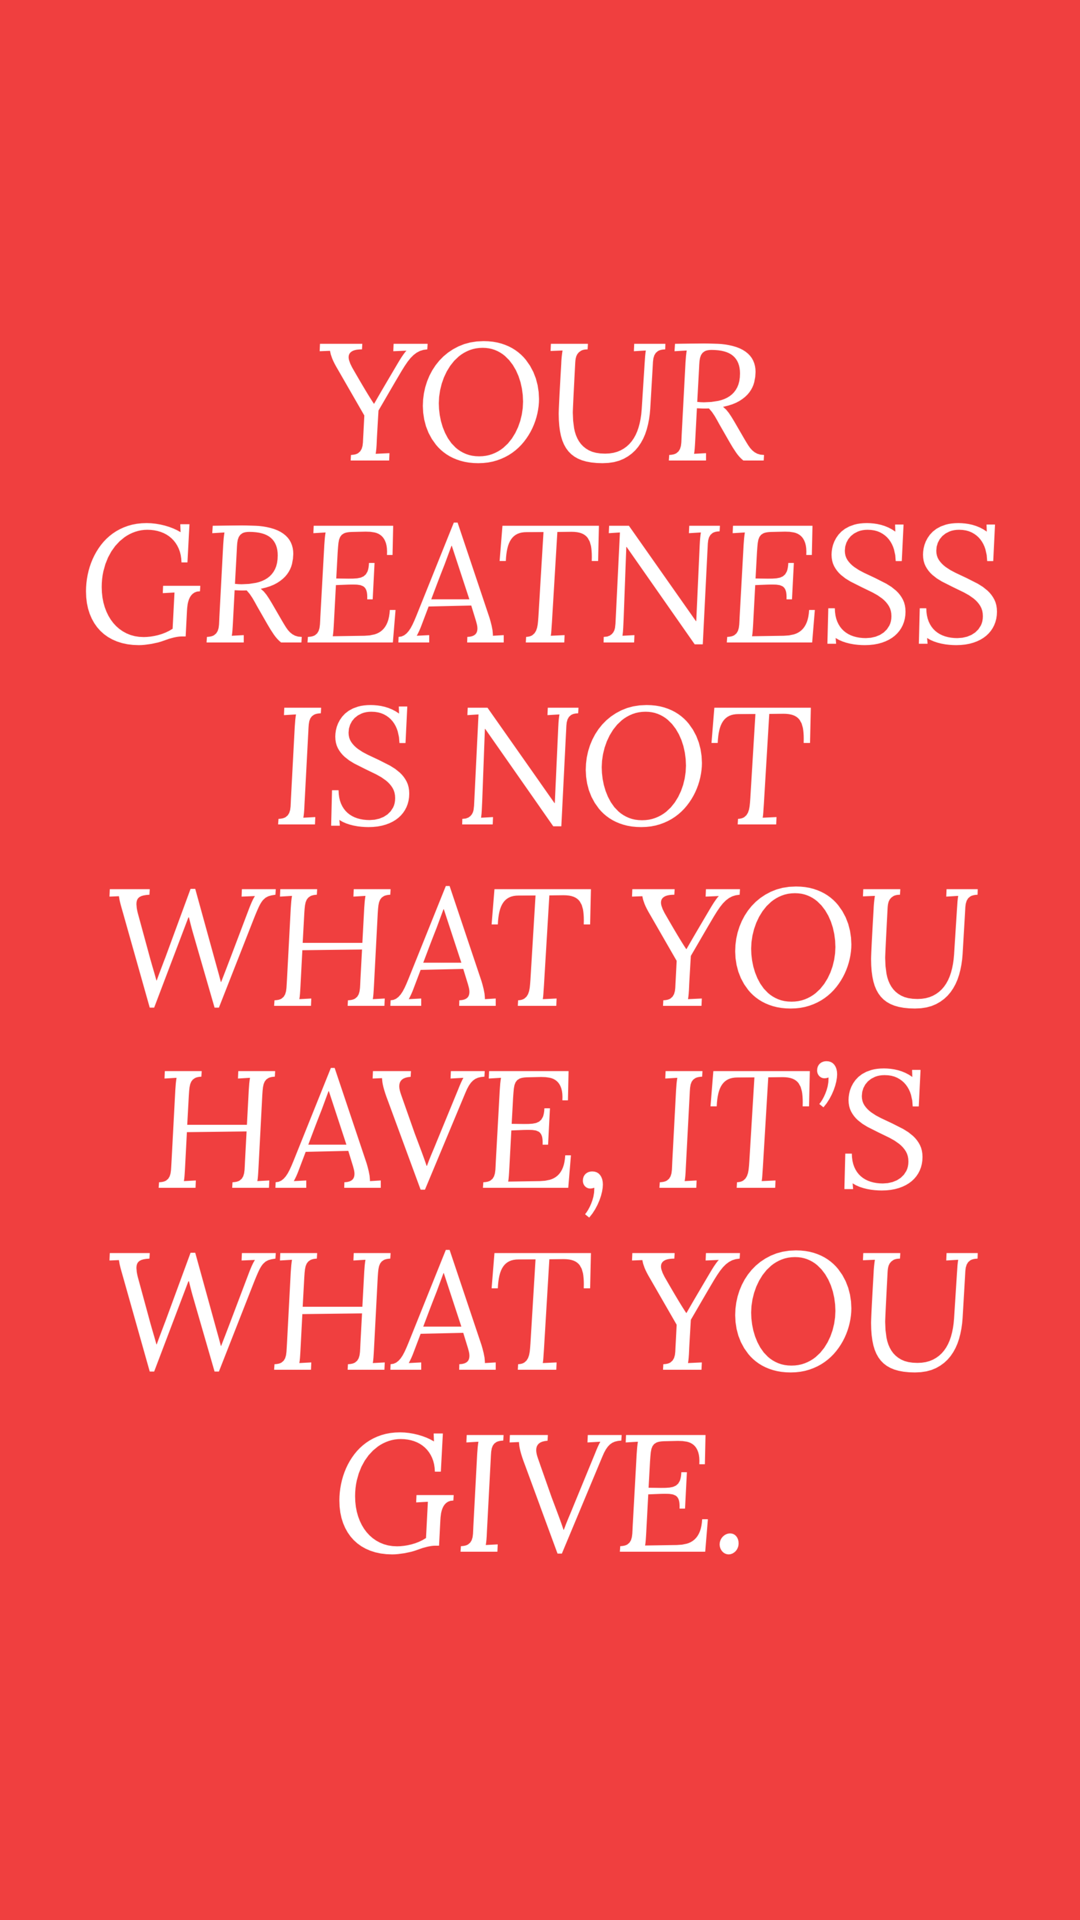 Your Greatness Donation Quotes Giving Quotes Giving Back Quotes